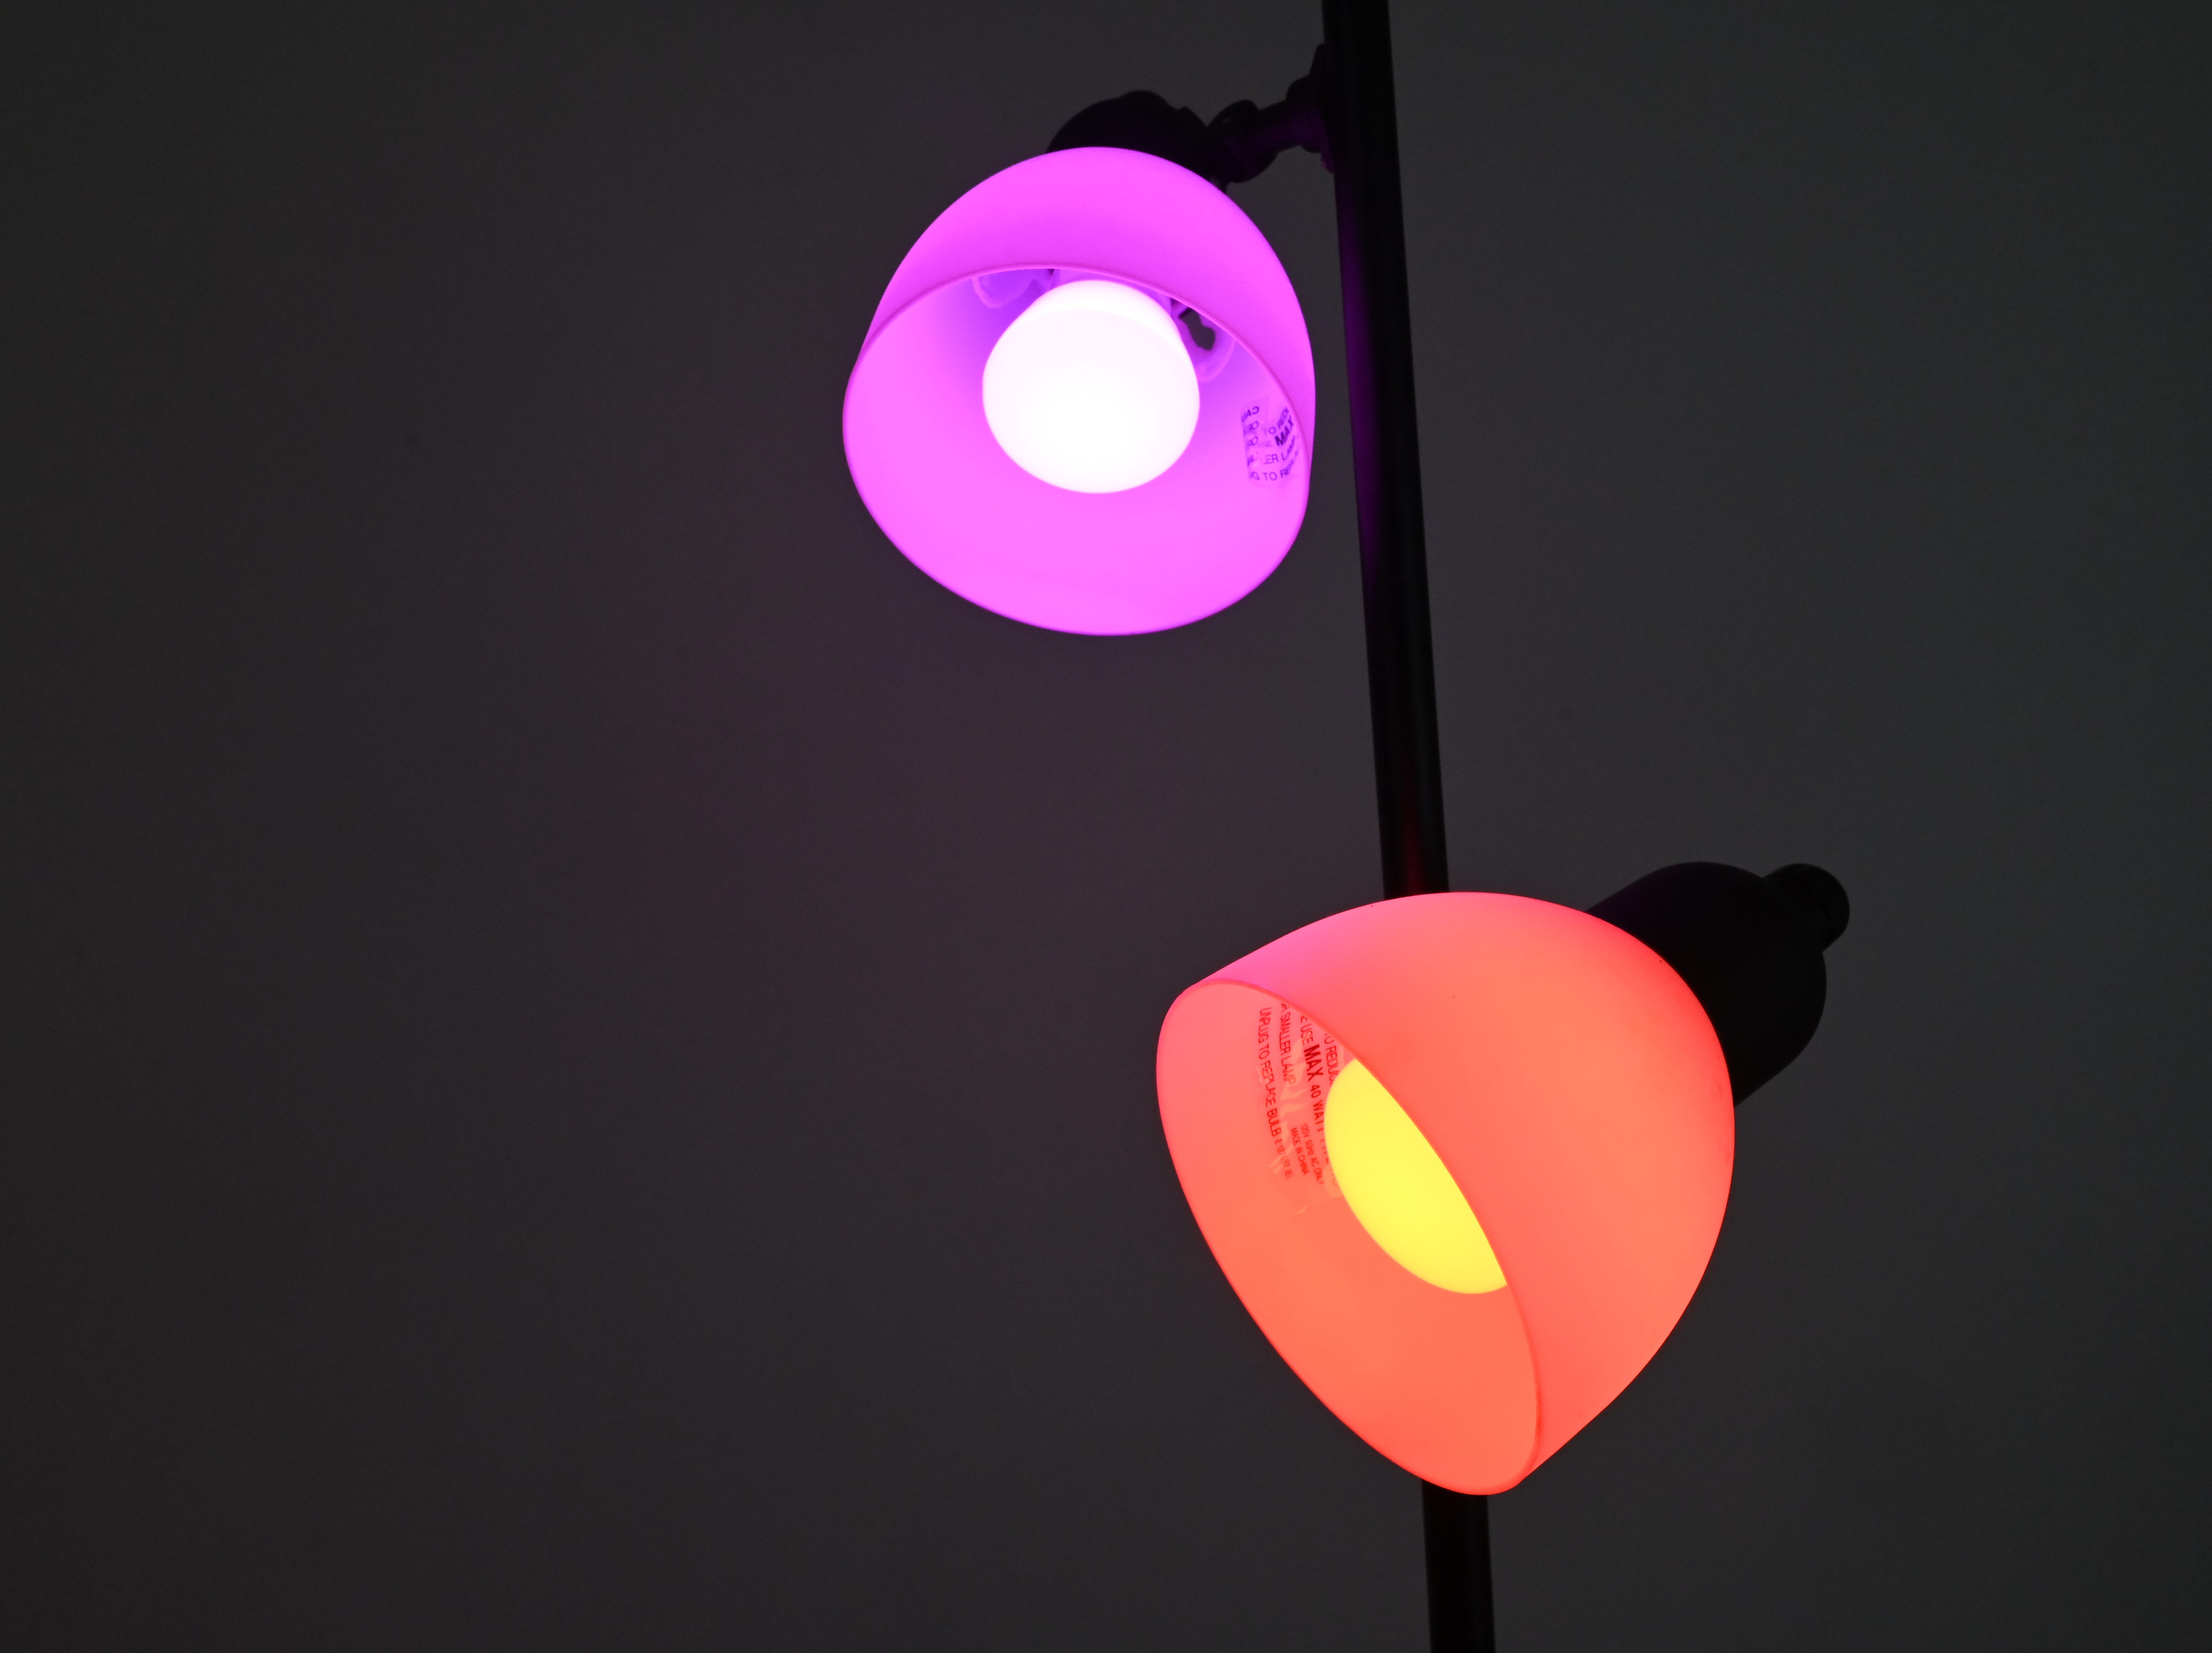 Philips Hue lights can change colors